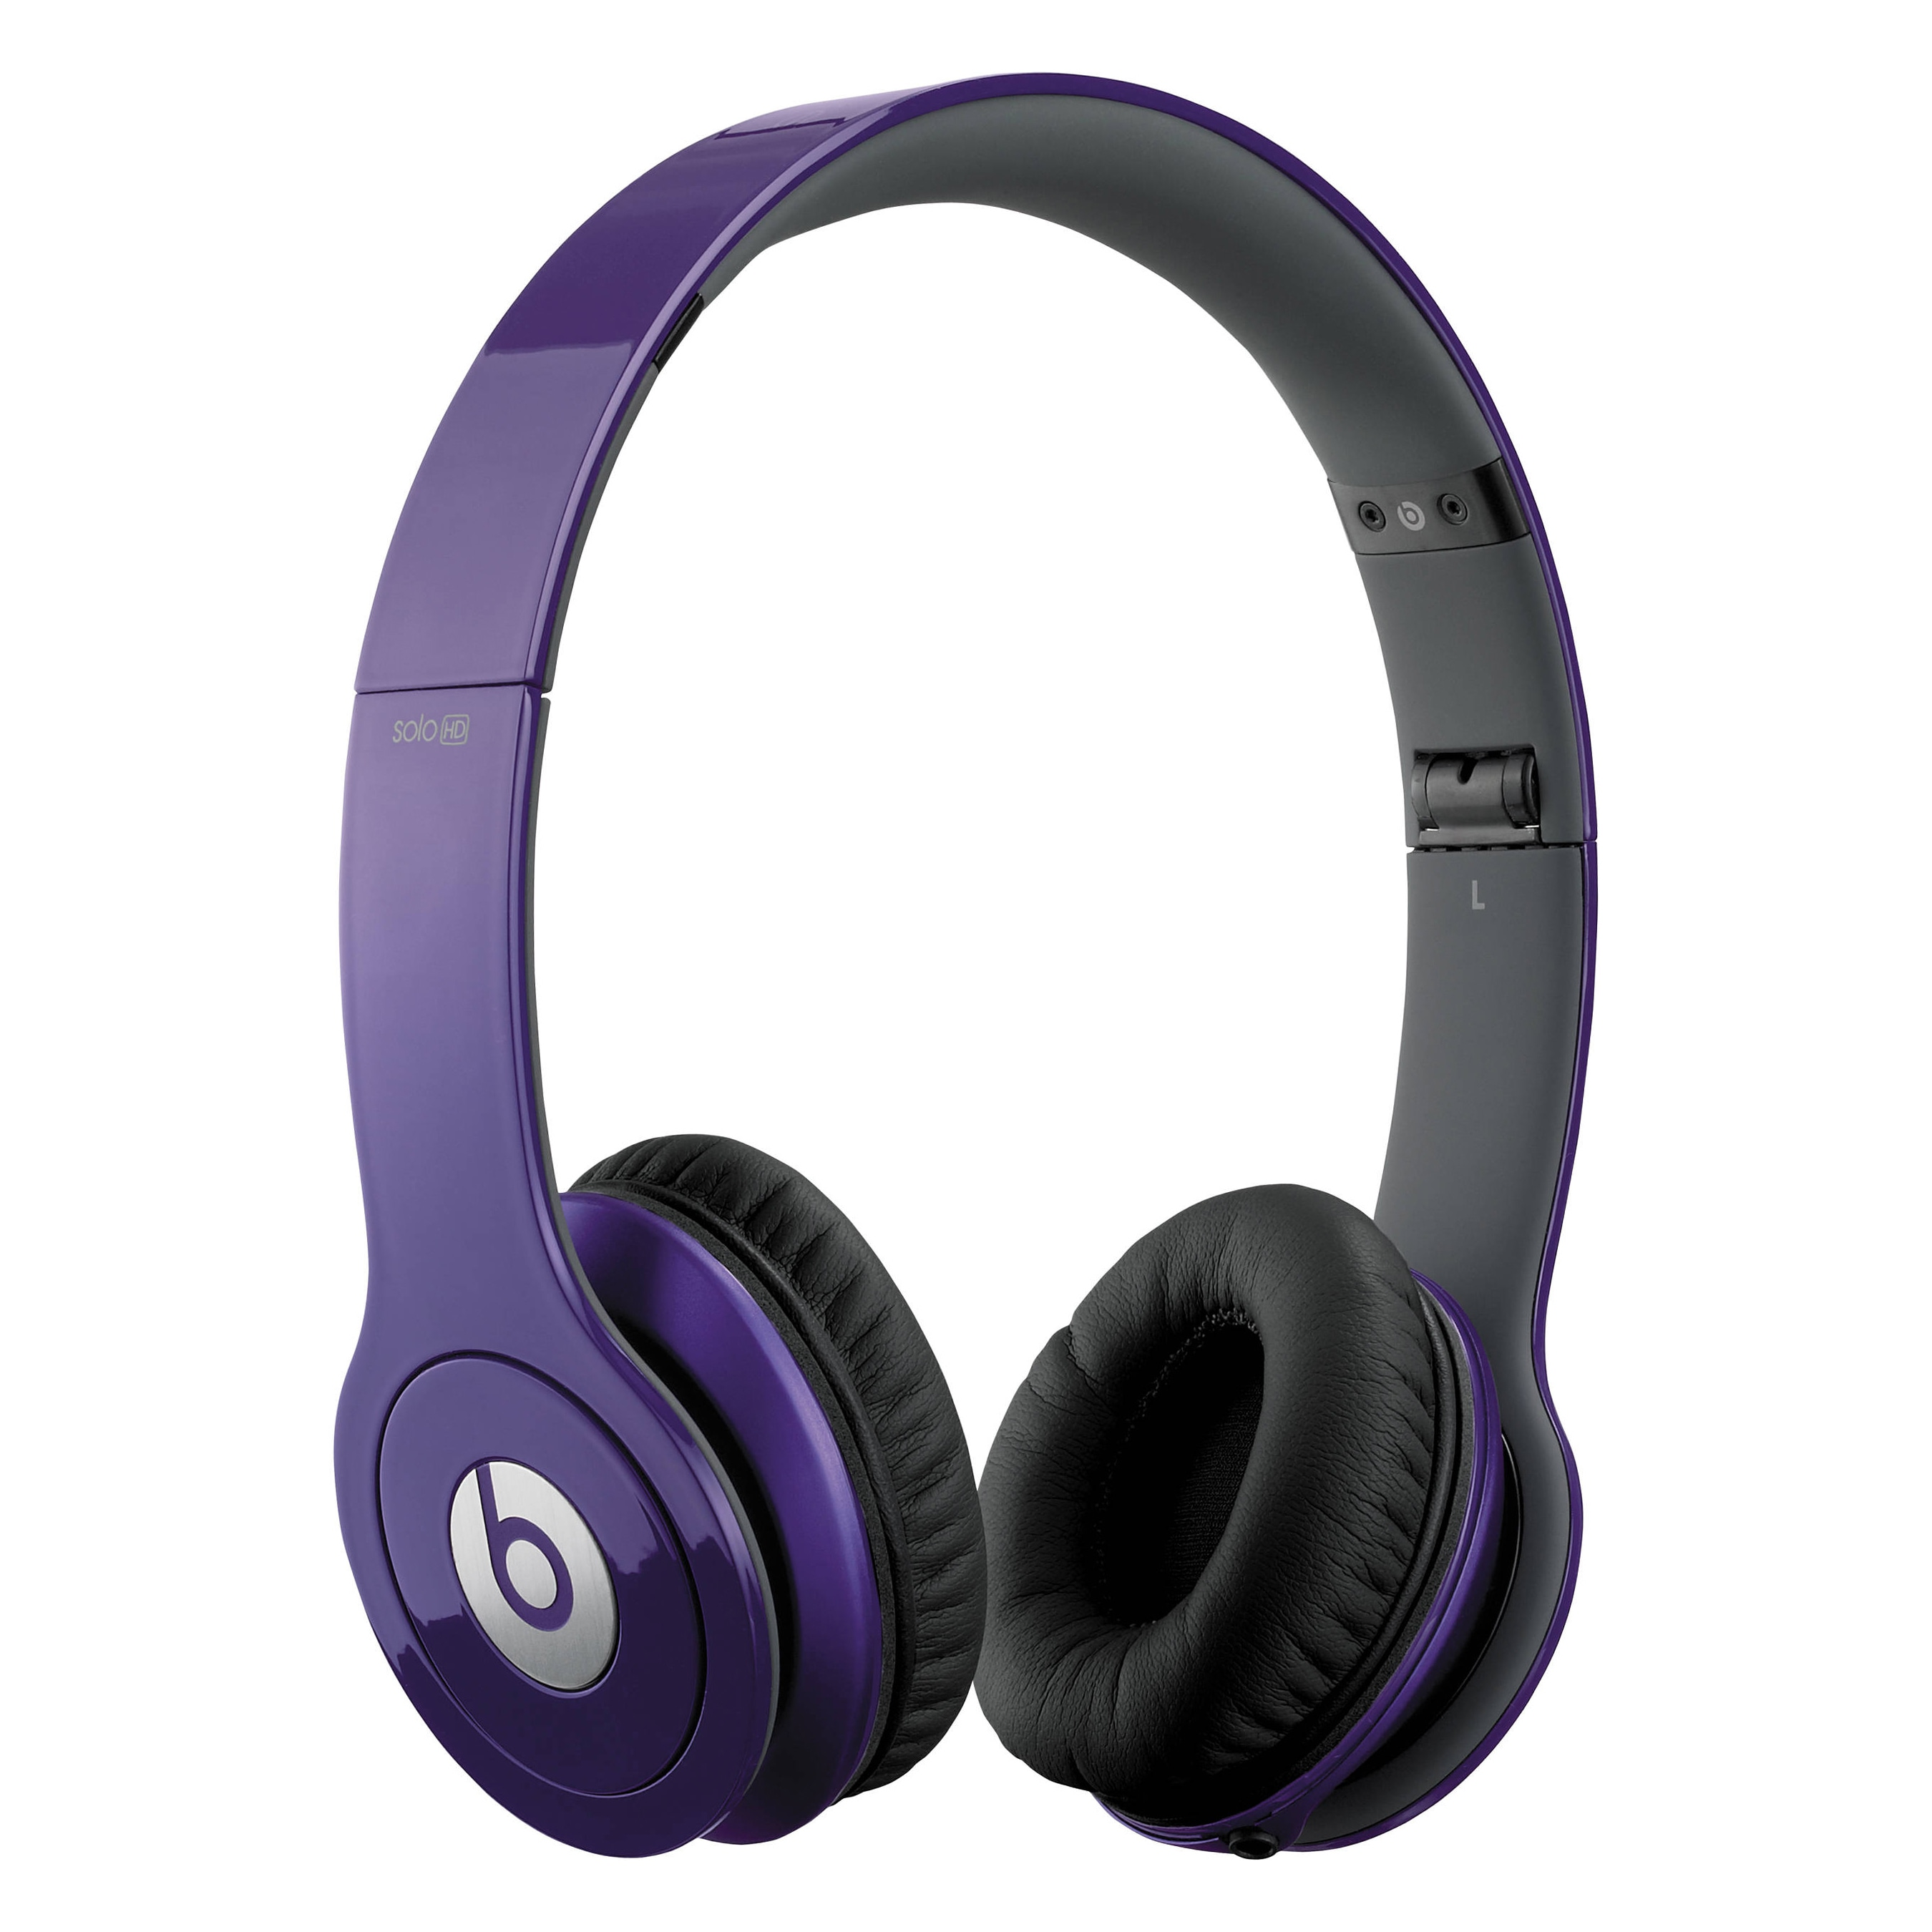 Shop Beats By Dre Solo Grape Purple Reconditioned Wired Headphones Overstock 11846046